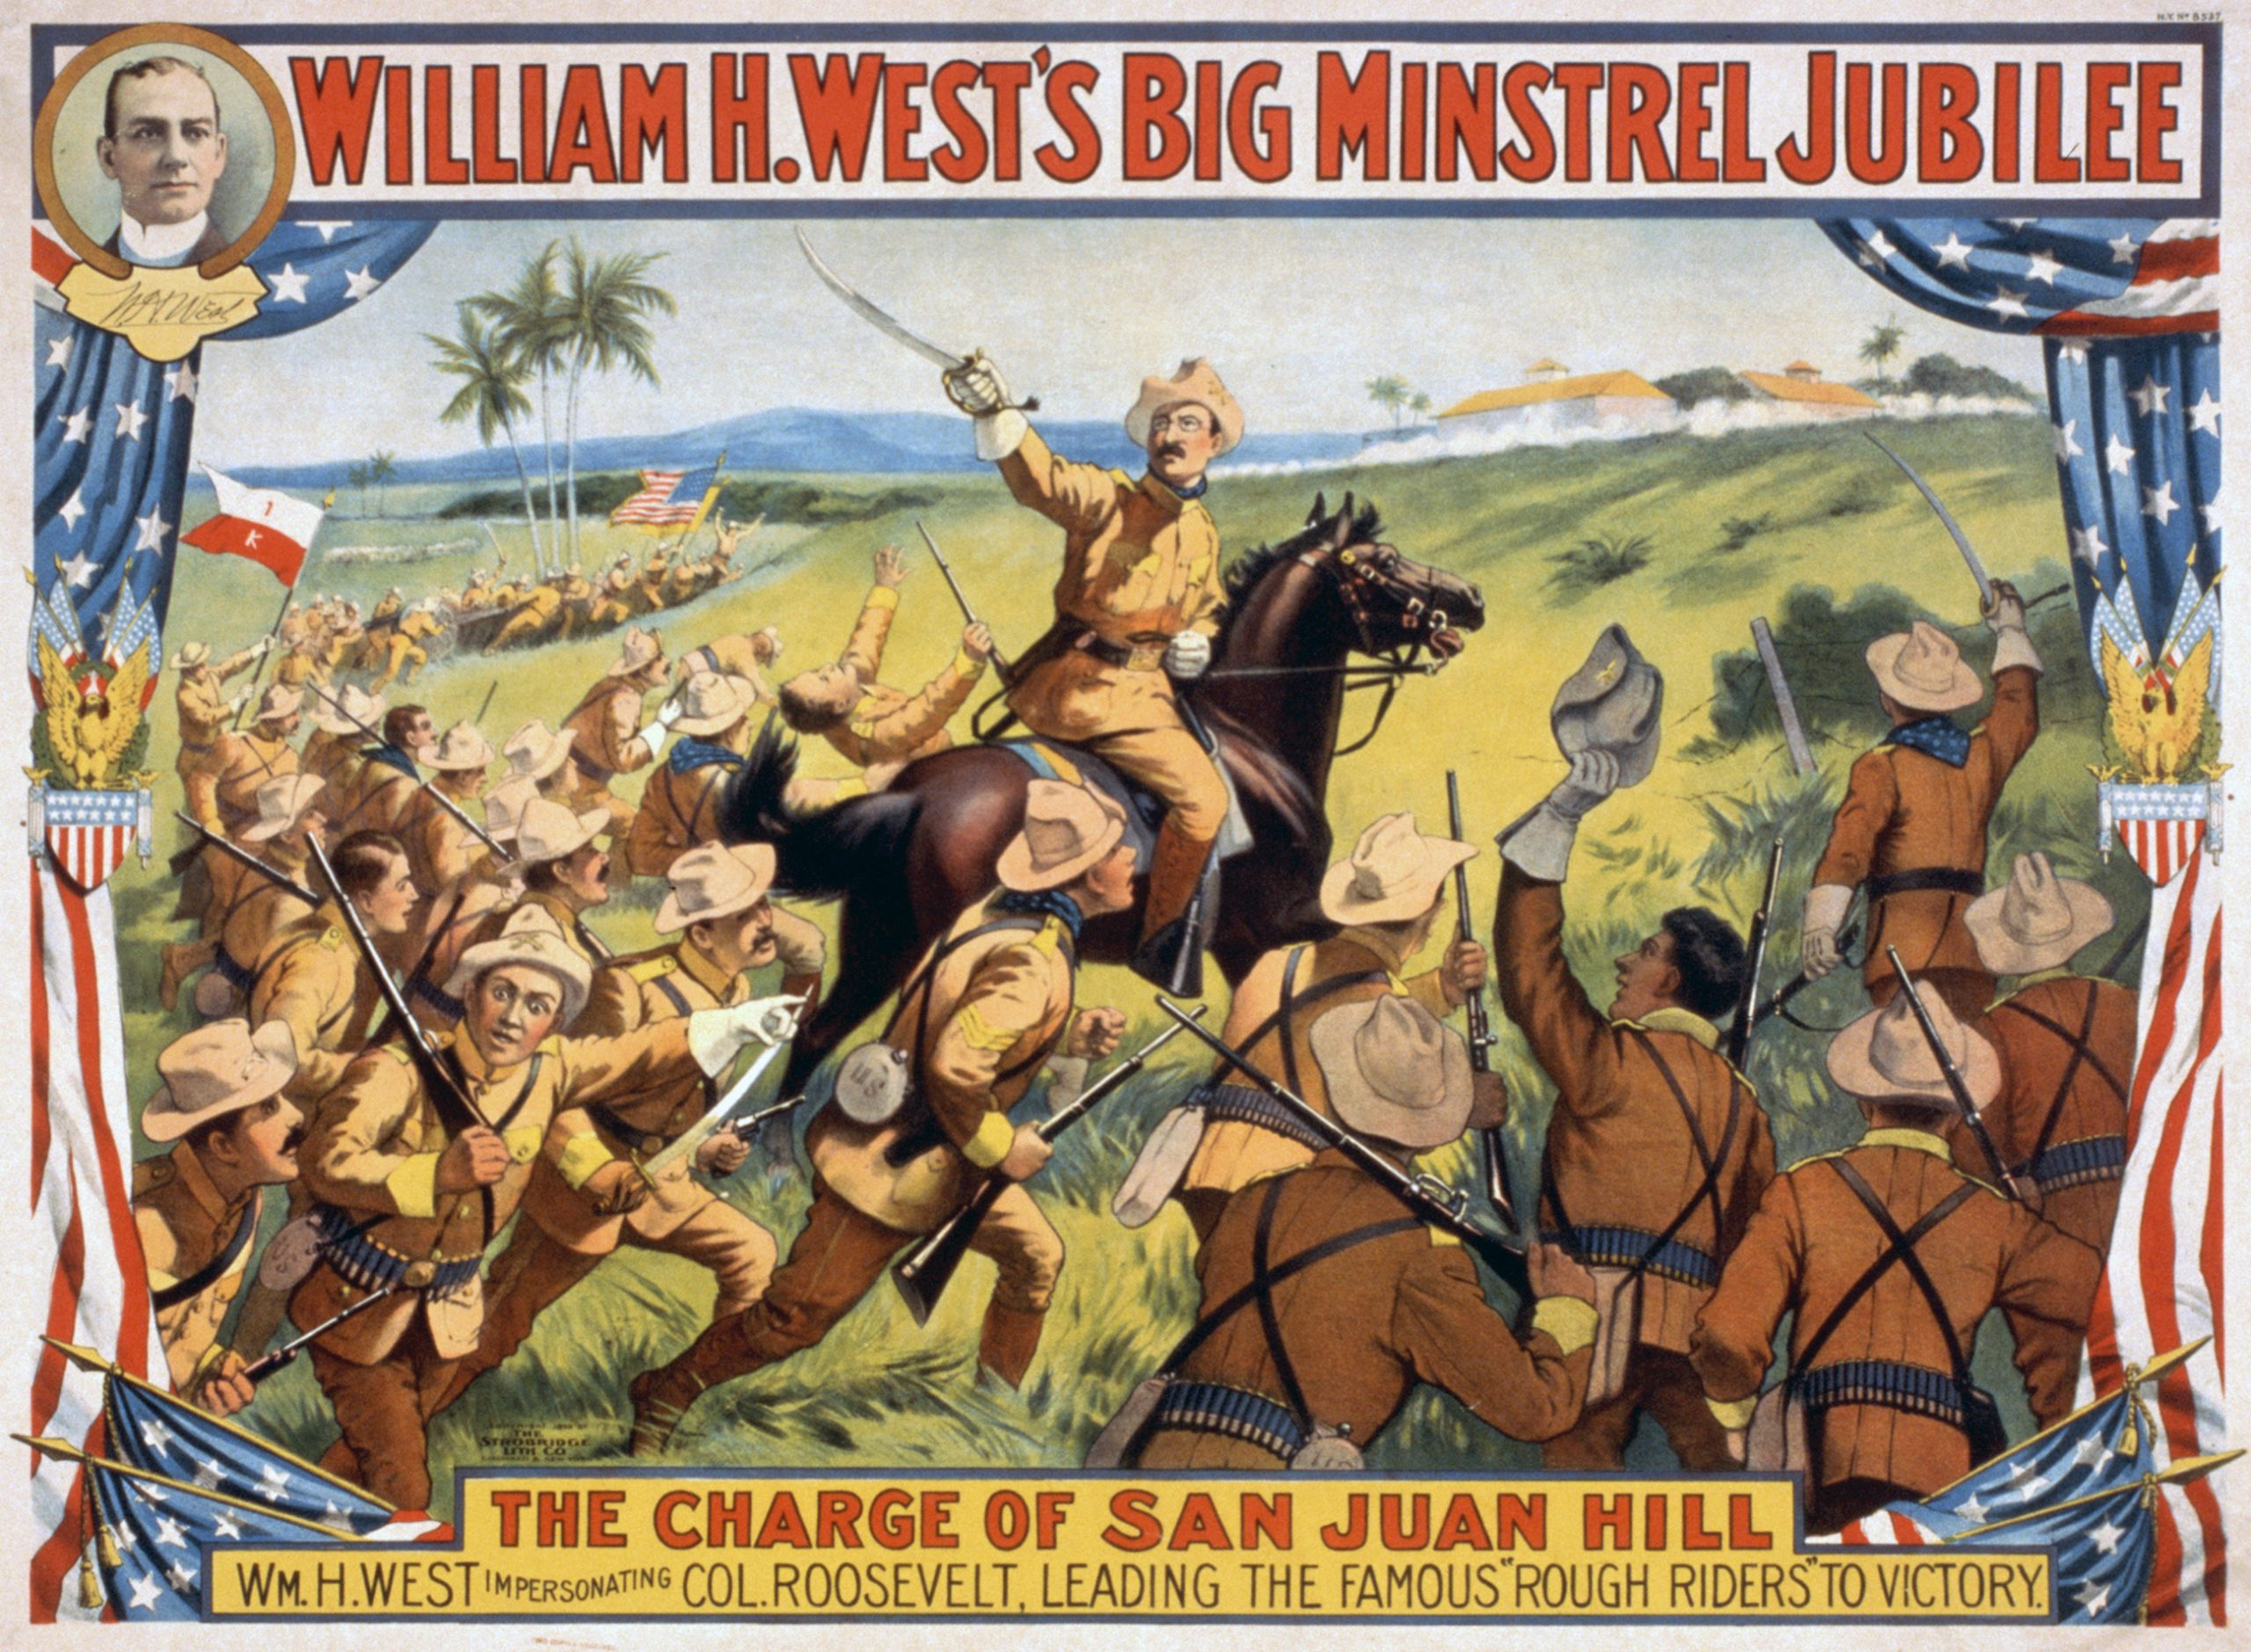 Roosevelt's charge up San Juan Hill